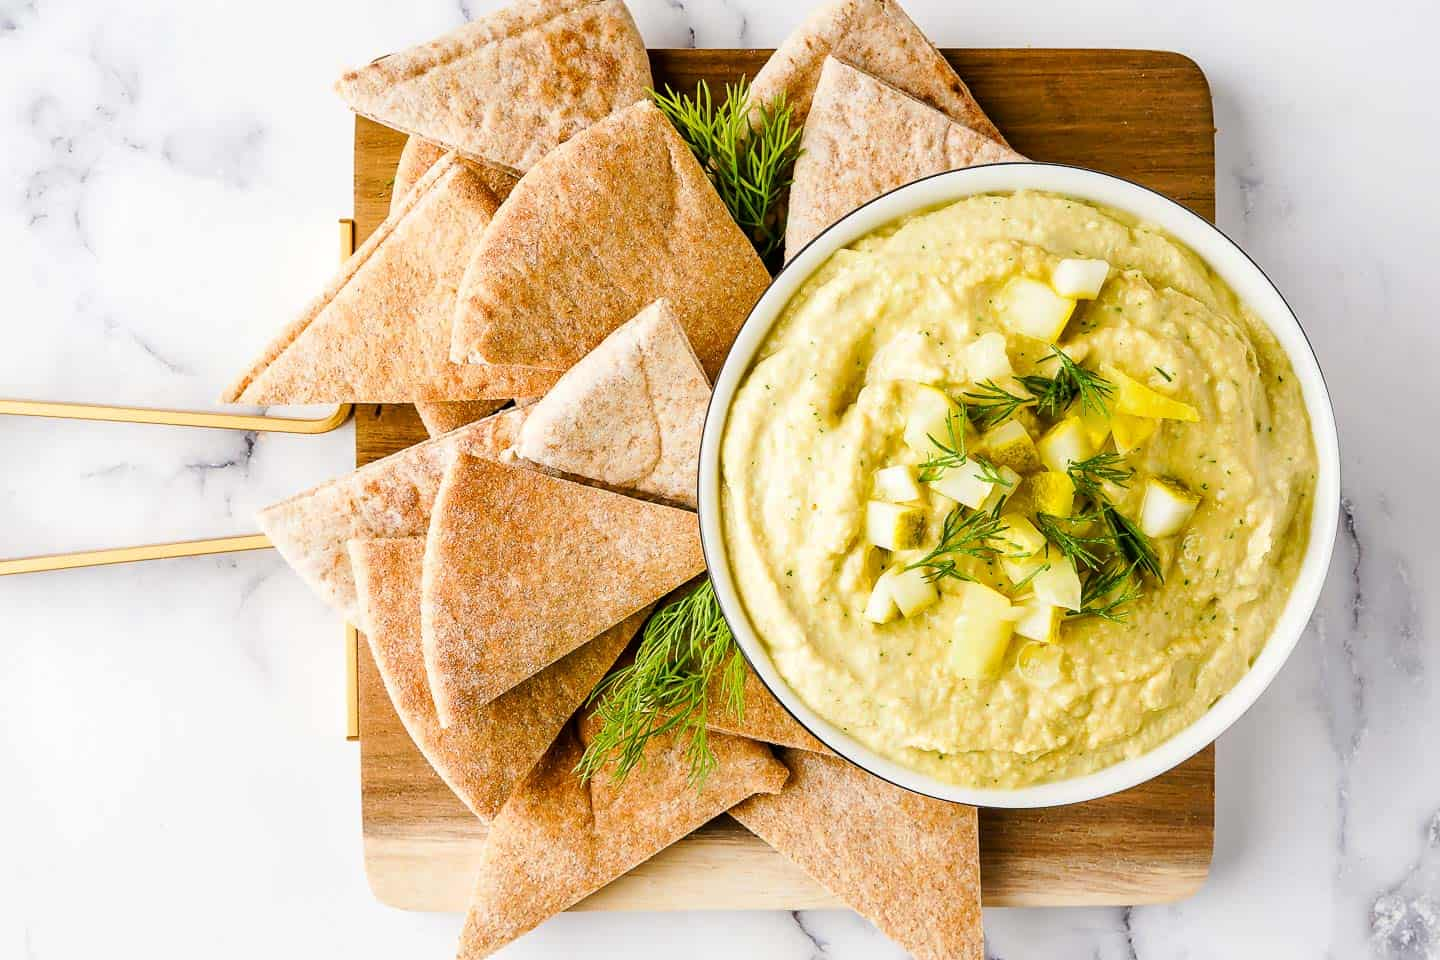 Dill Pickle Hummus and Pita on Wooden Board